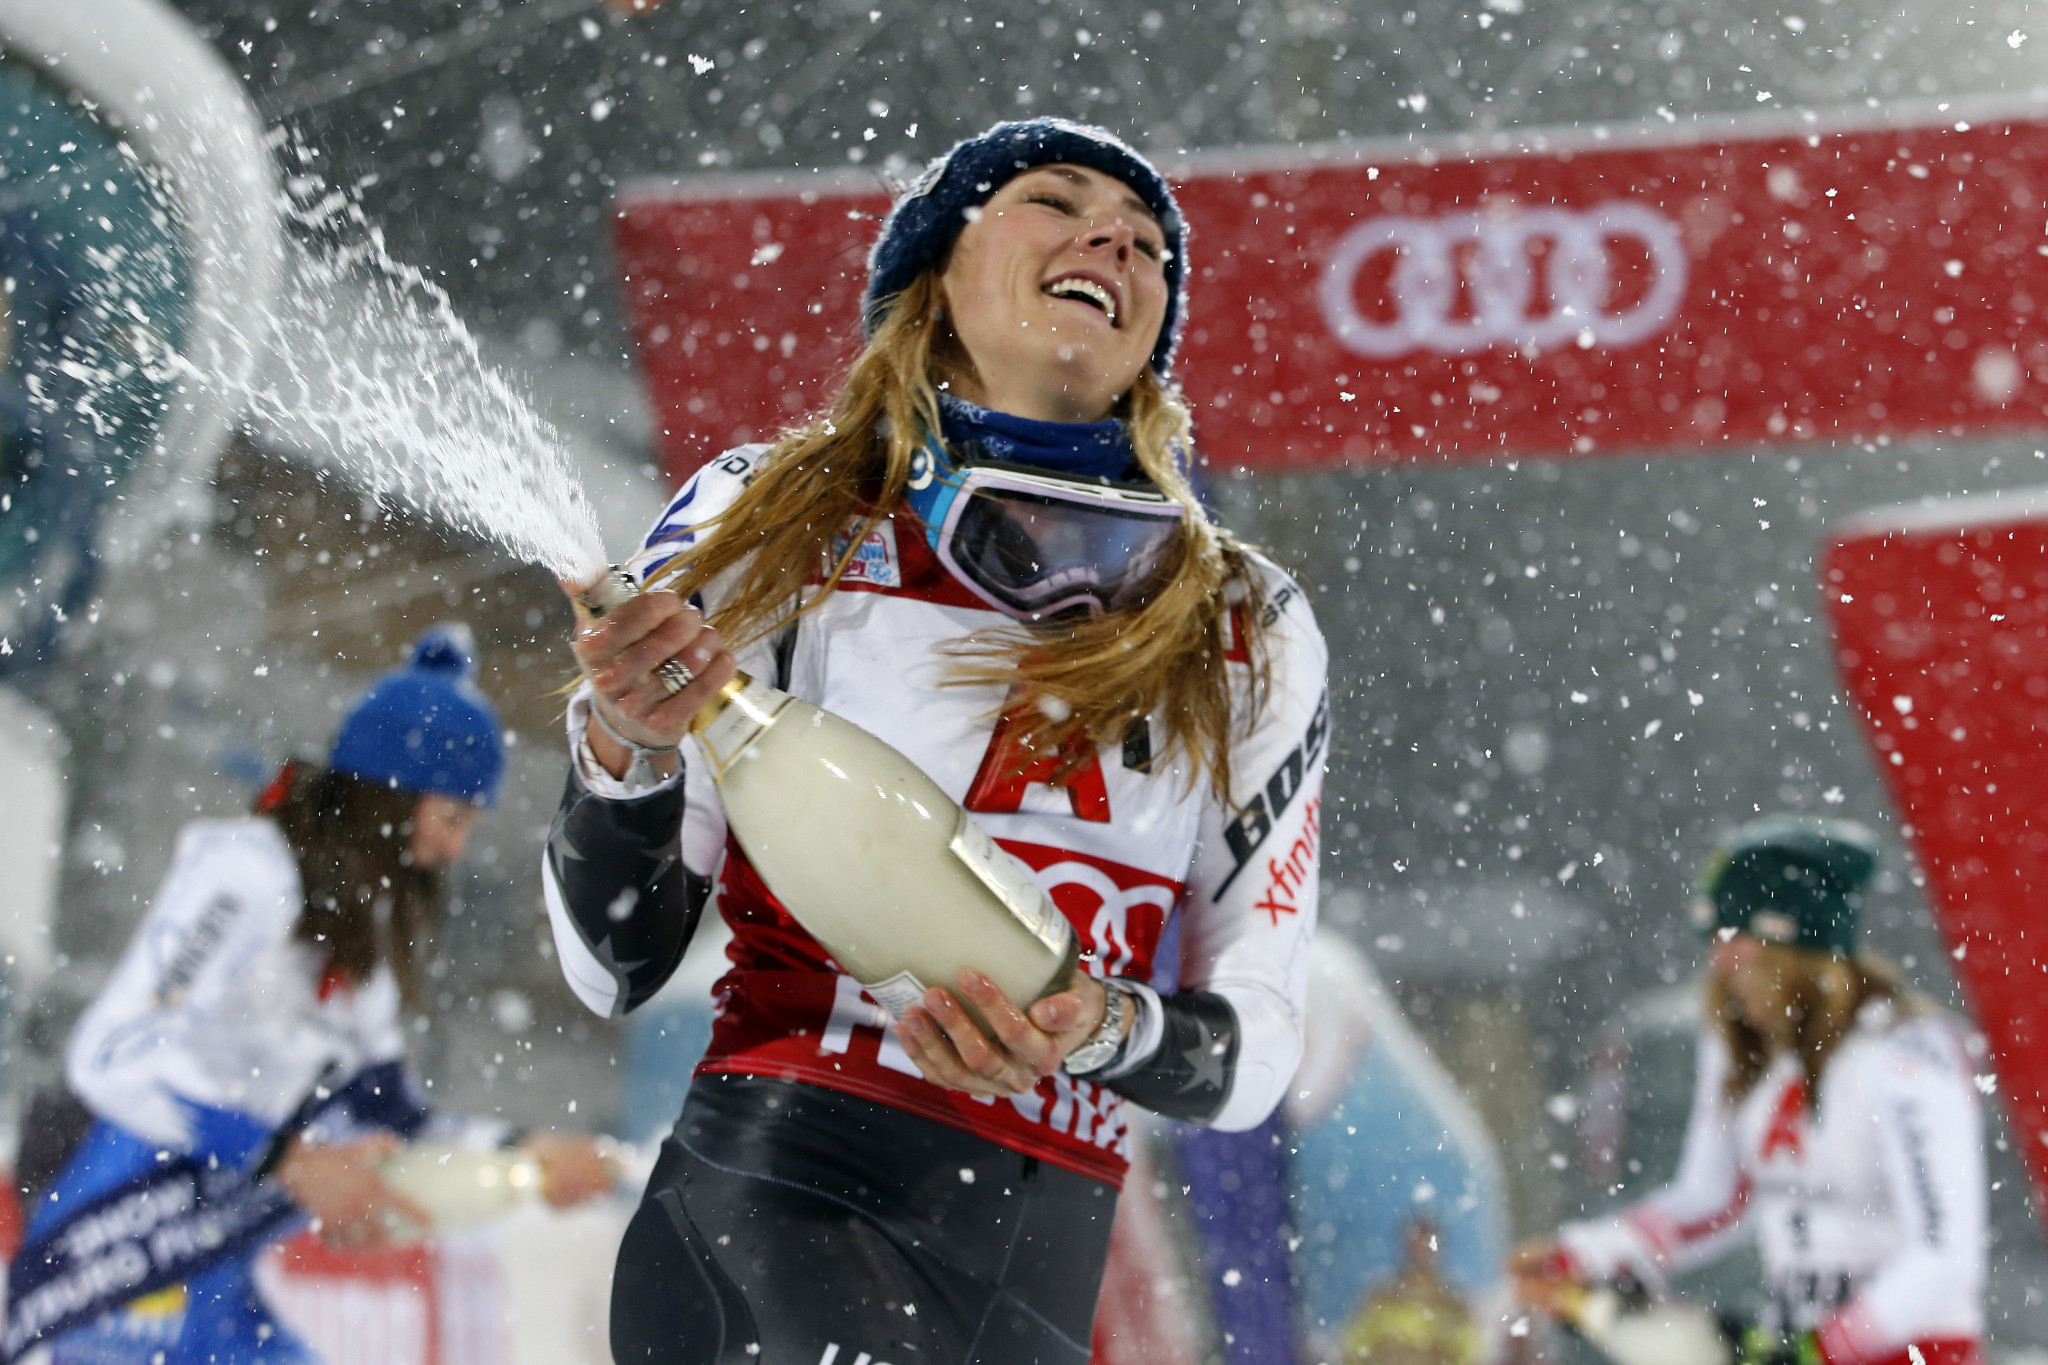 Alpine skier Mikaela Shiffrin won six World Cup races in December to take her overall tally to 51 ©Getty Images